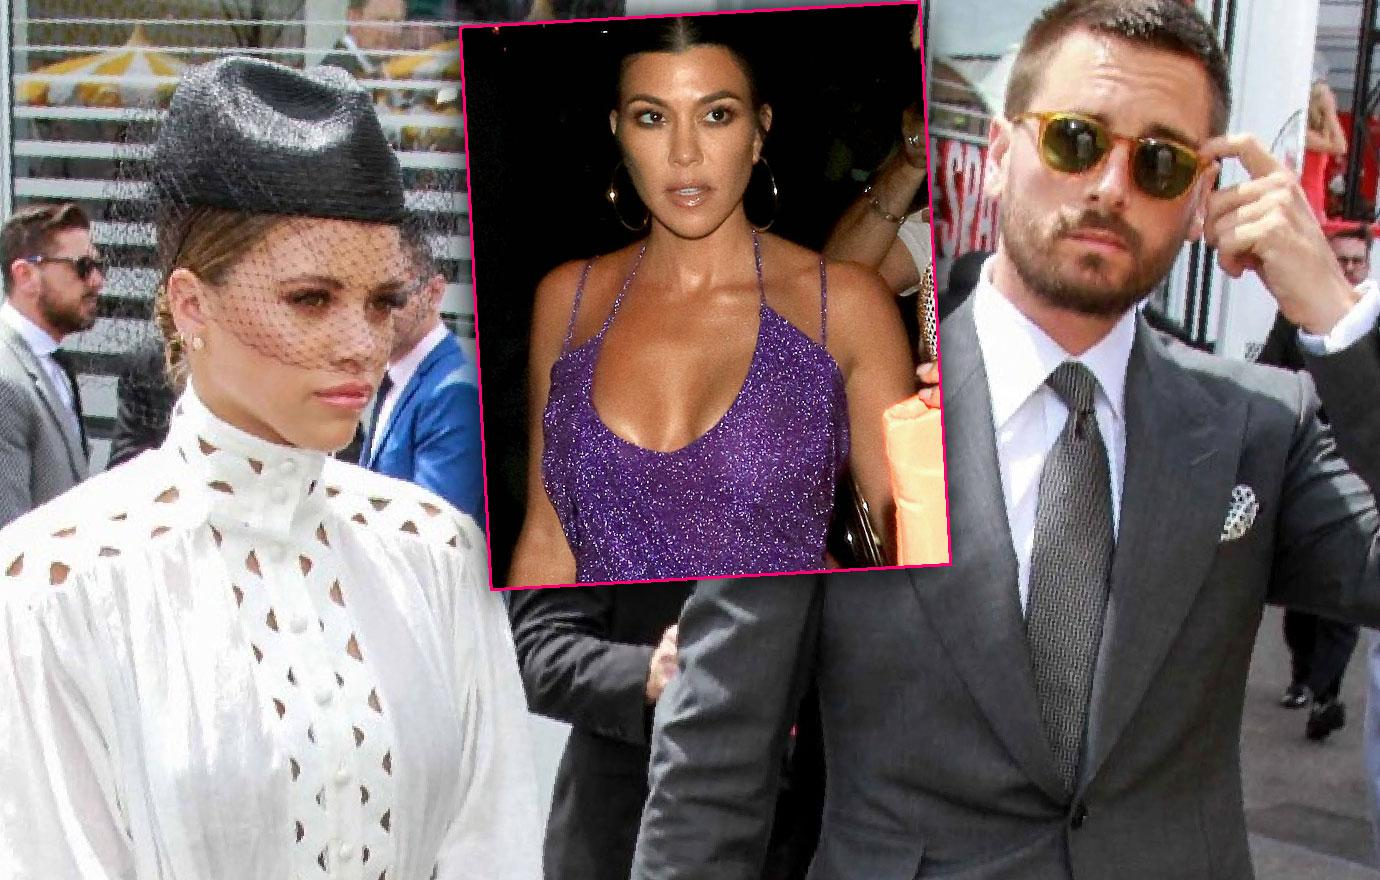 Scott Disick And Sofia Richie In Australia Kourtney-reunion- off